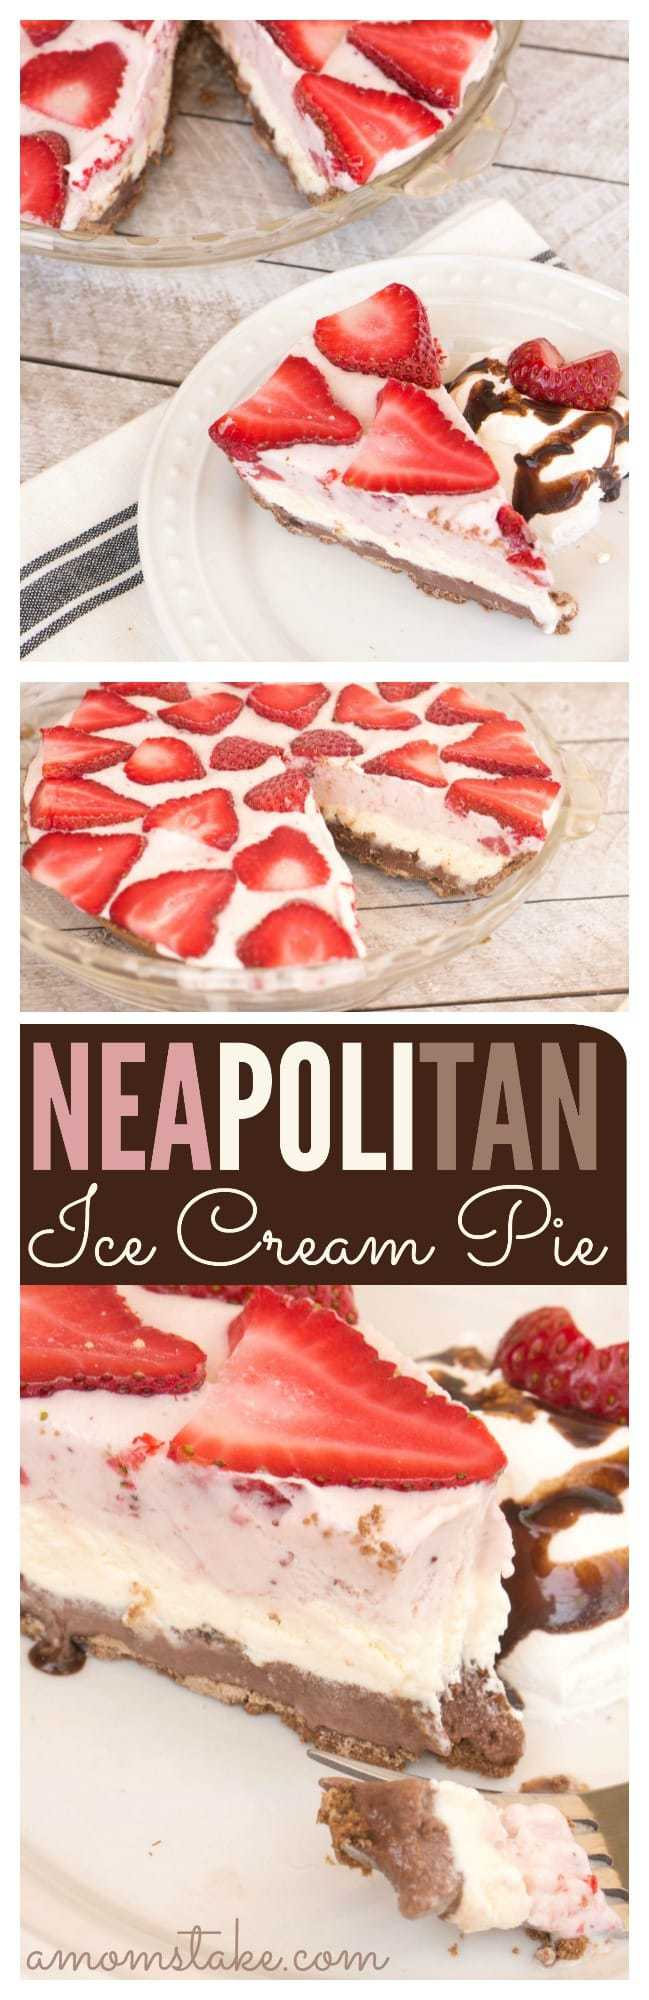 Yummy, yummy! You'll find layers of chocolate, vanilla, and strawberry ice cream - and a few surprises - in this perfect summer dessert, an easy homemade Neapolitan Ice Cream Pie recipe.